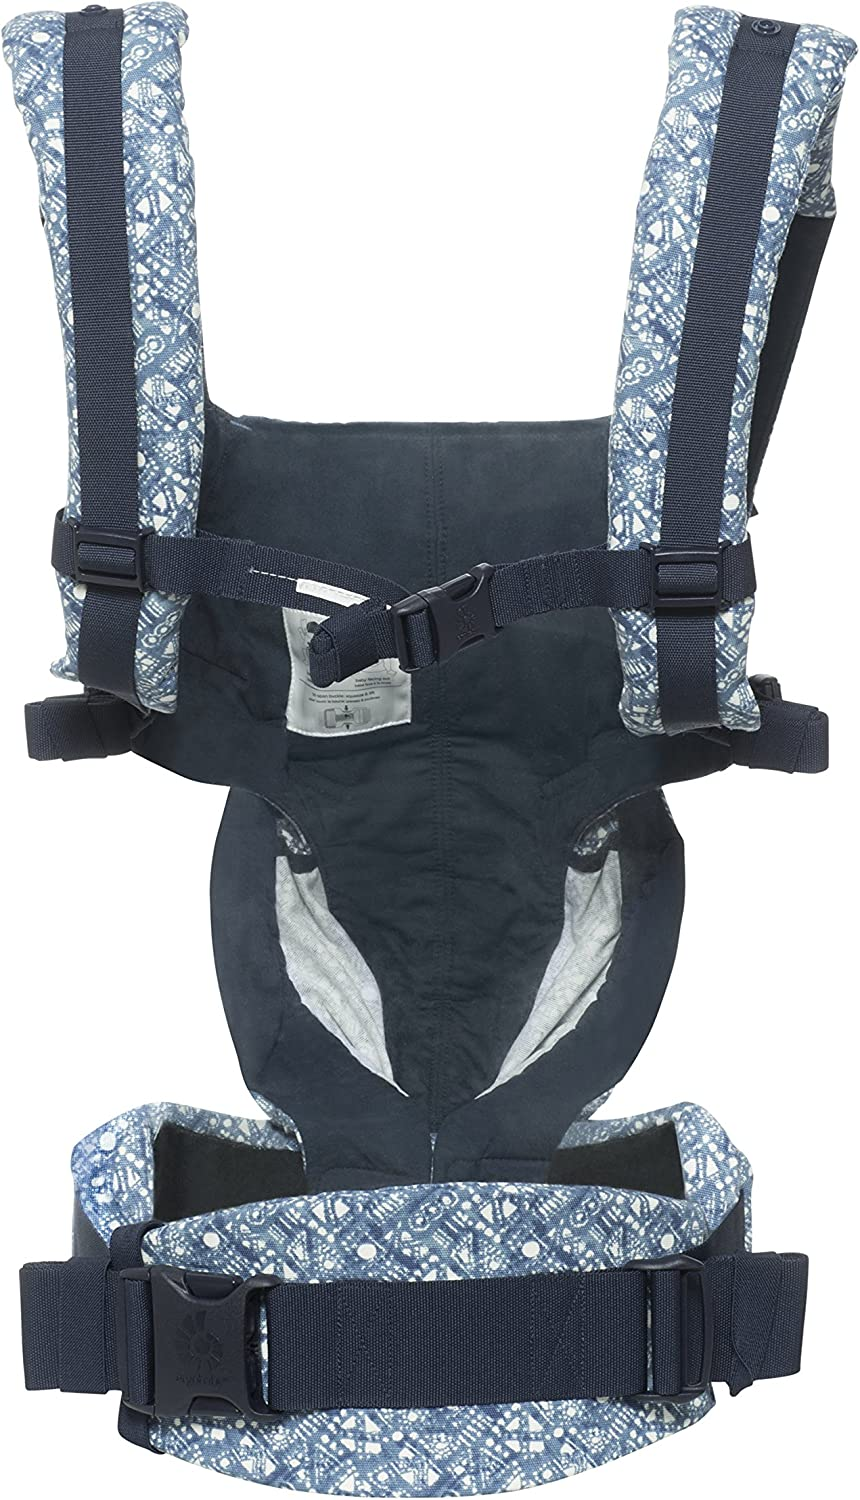 Blue Blooms Ergobaby Baby Carrier for Newborn to Toddler 4-Position Omni 360 Cool Air Mesh Ergonomic Child Carrier Backpack